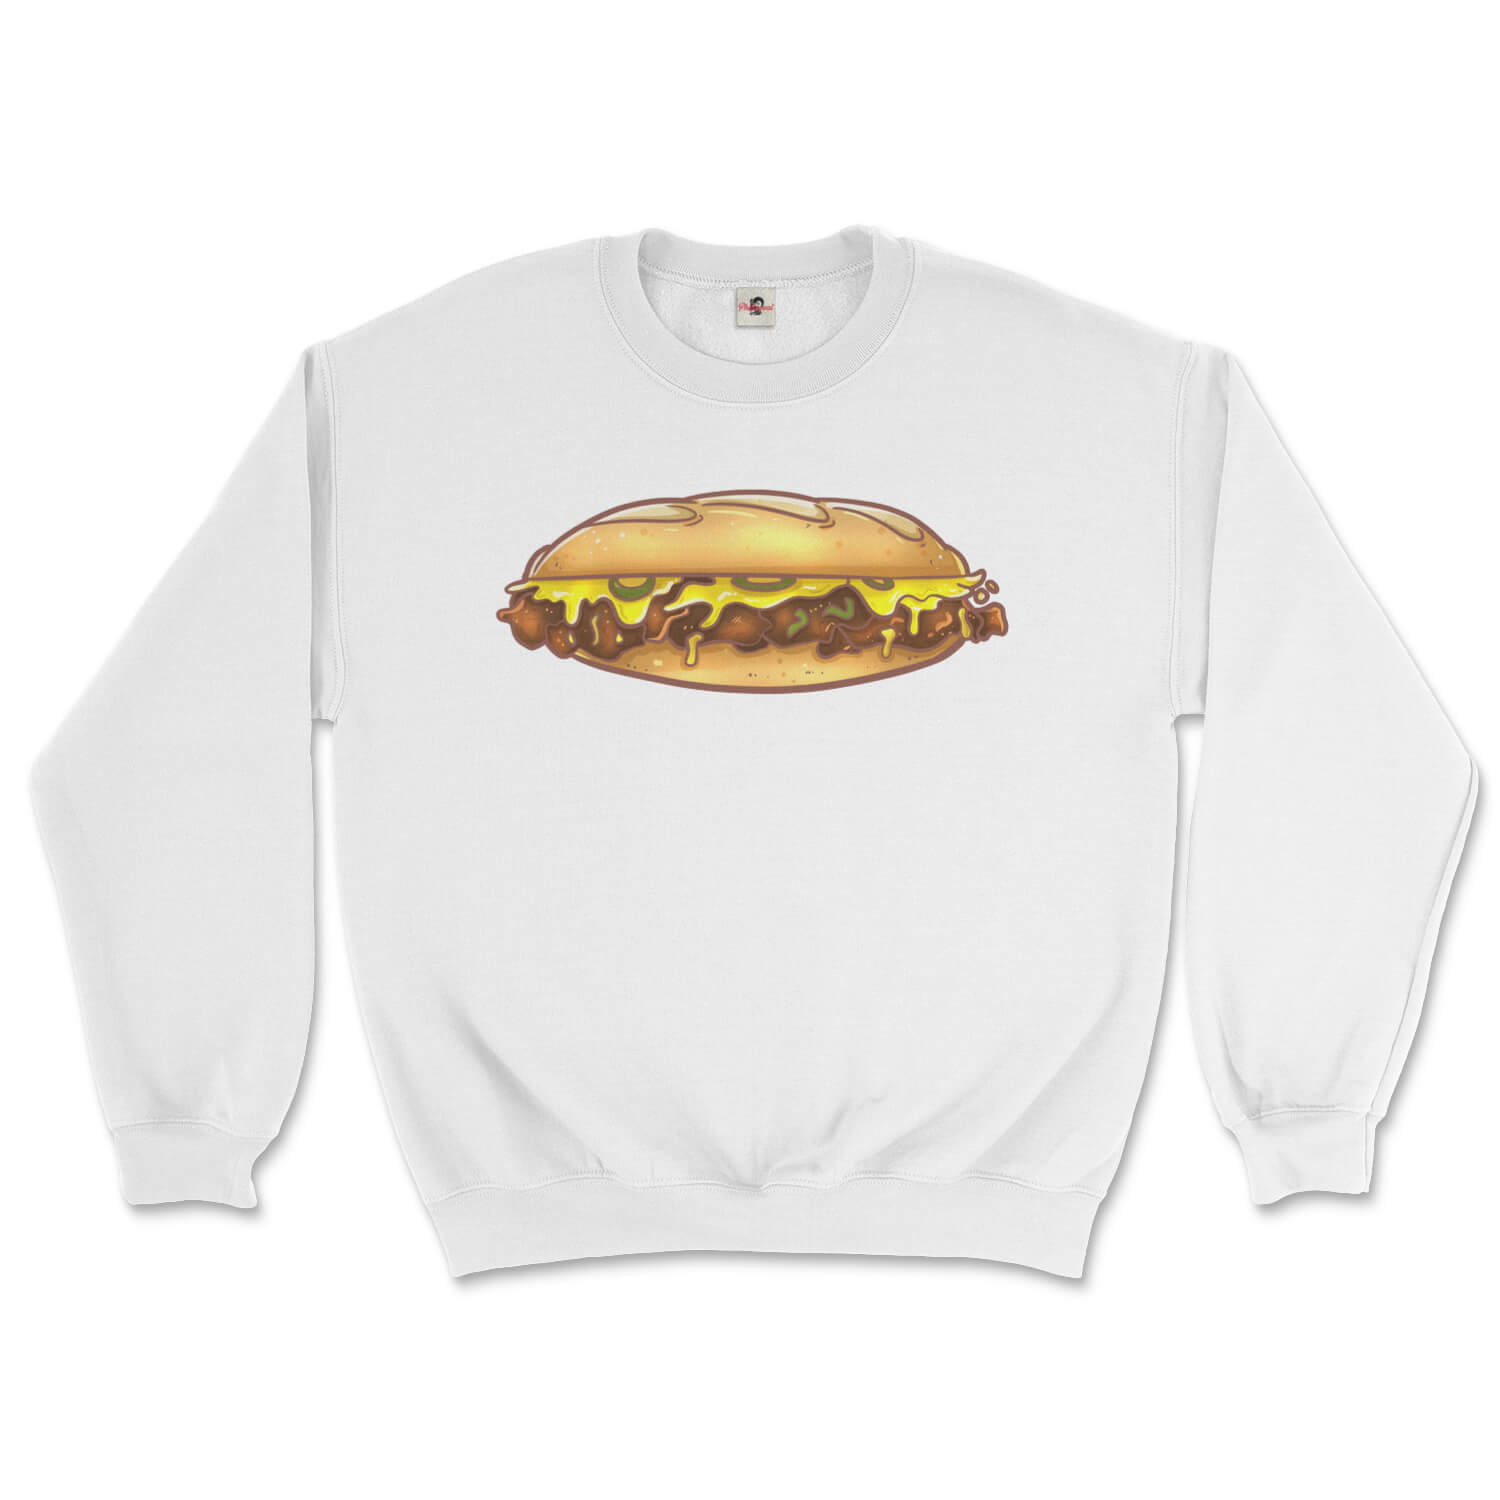 philly cheese steak design on a white sweatshirt from phillygoat